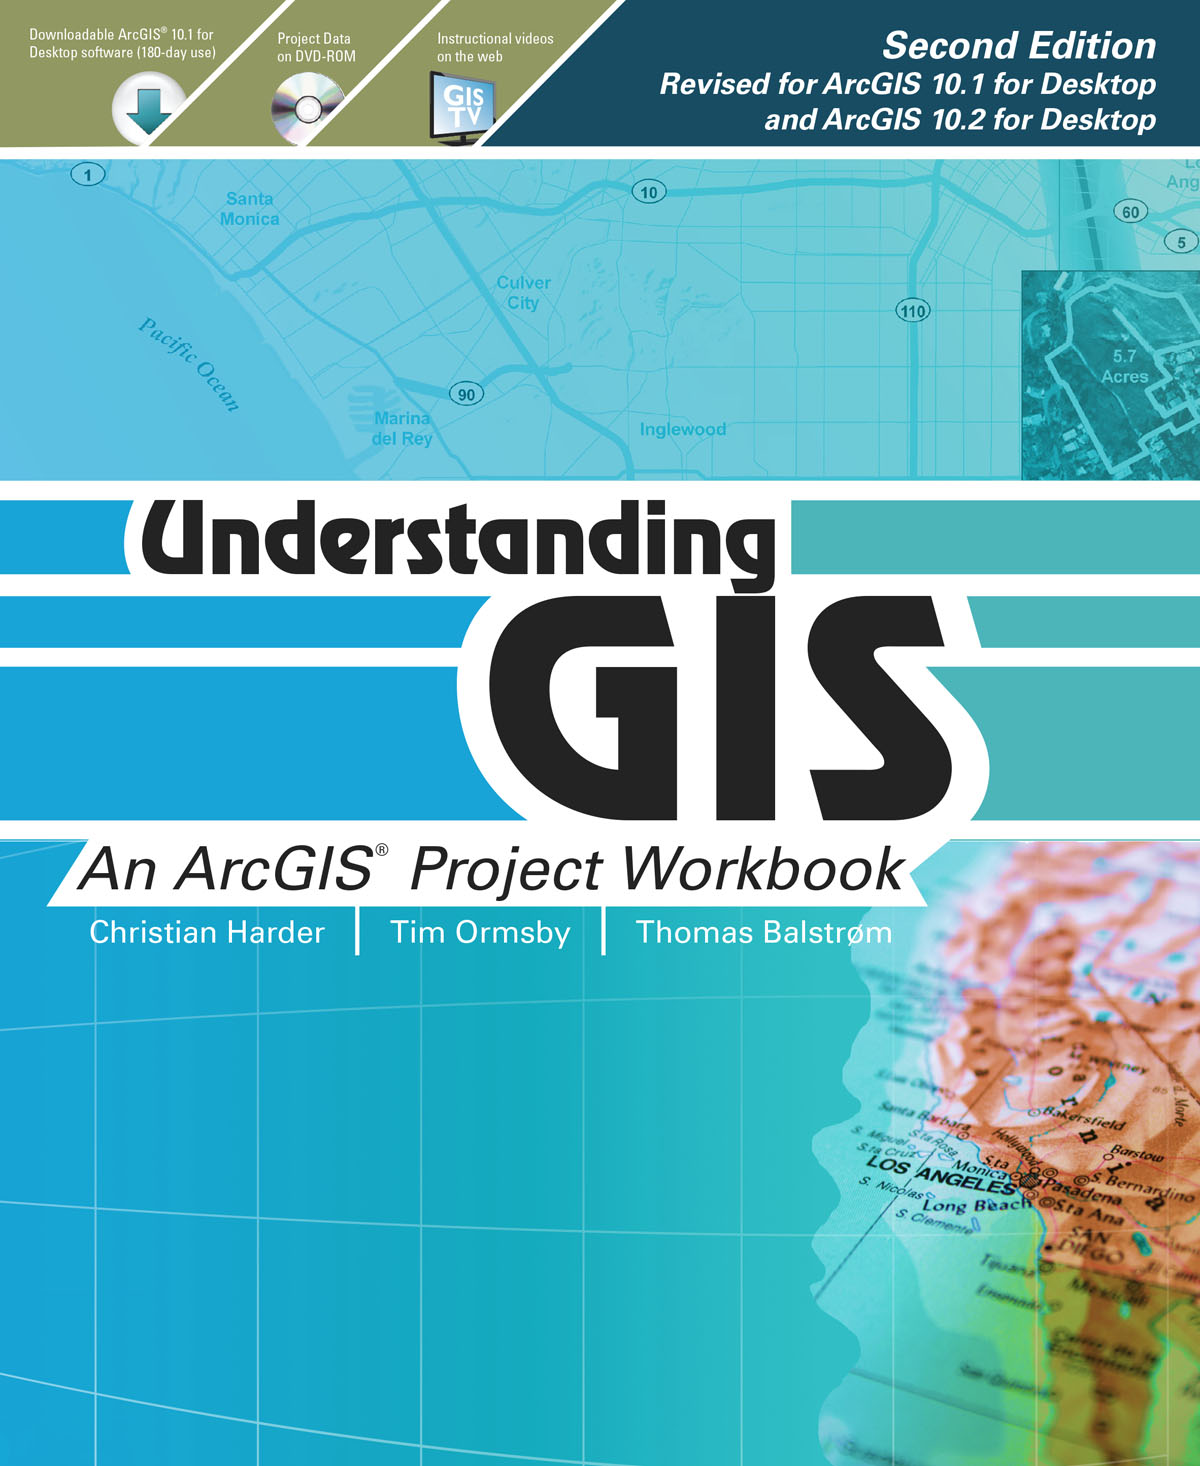 This tutorial explains the methods, tools, and processes needed for GIS analysis.